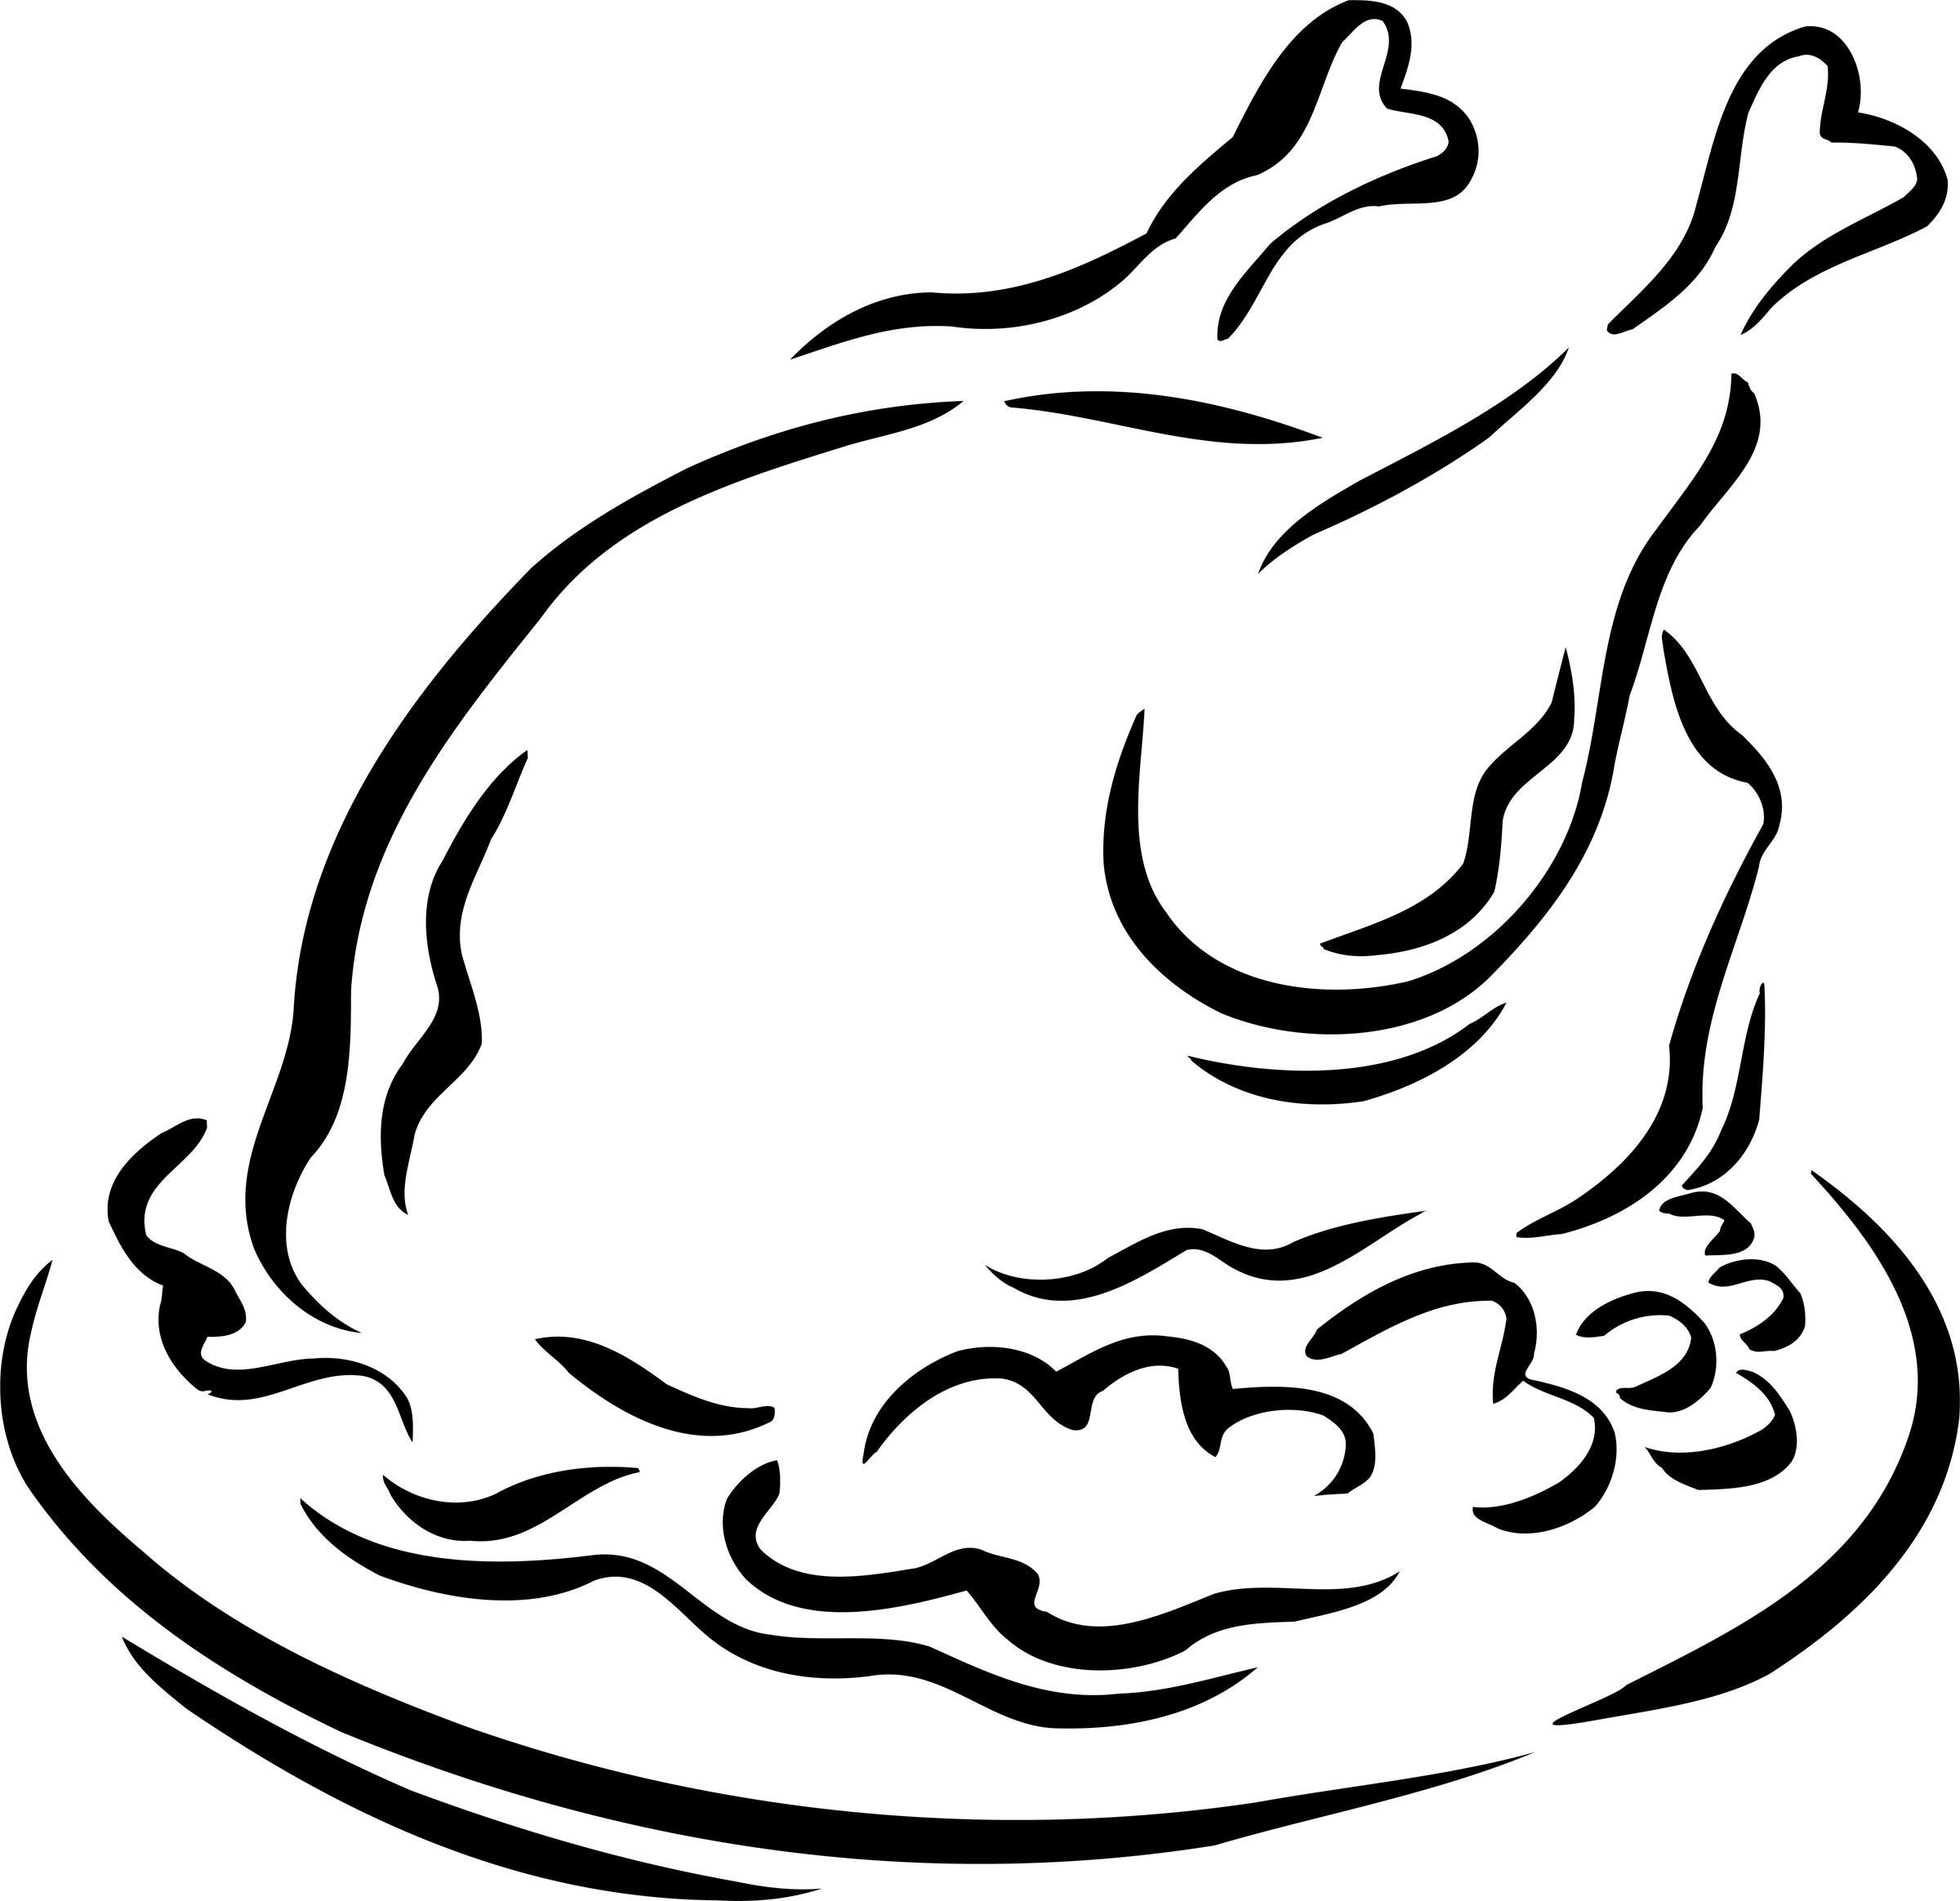 Roast chicken clipart black and white - photo#10